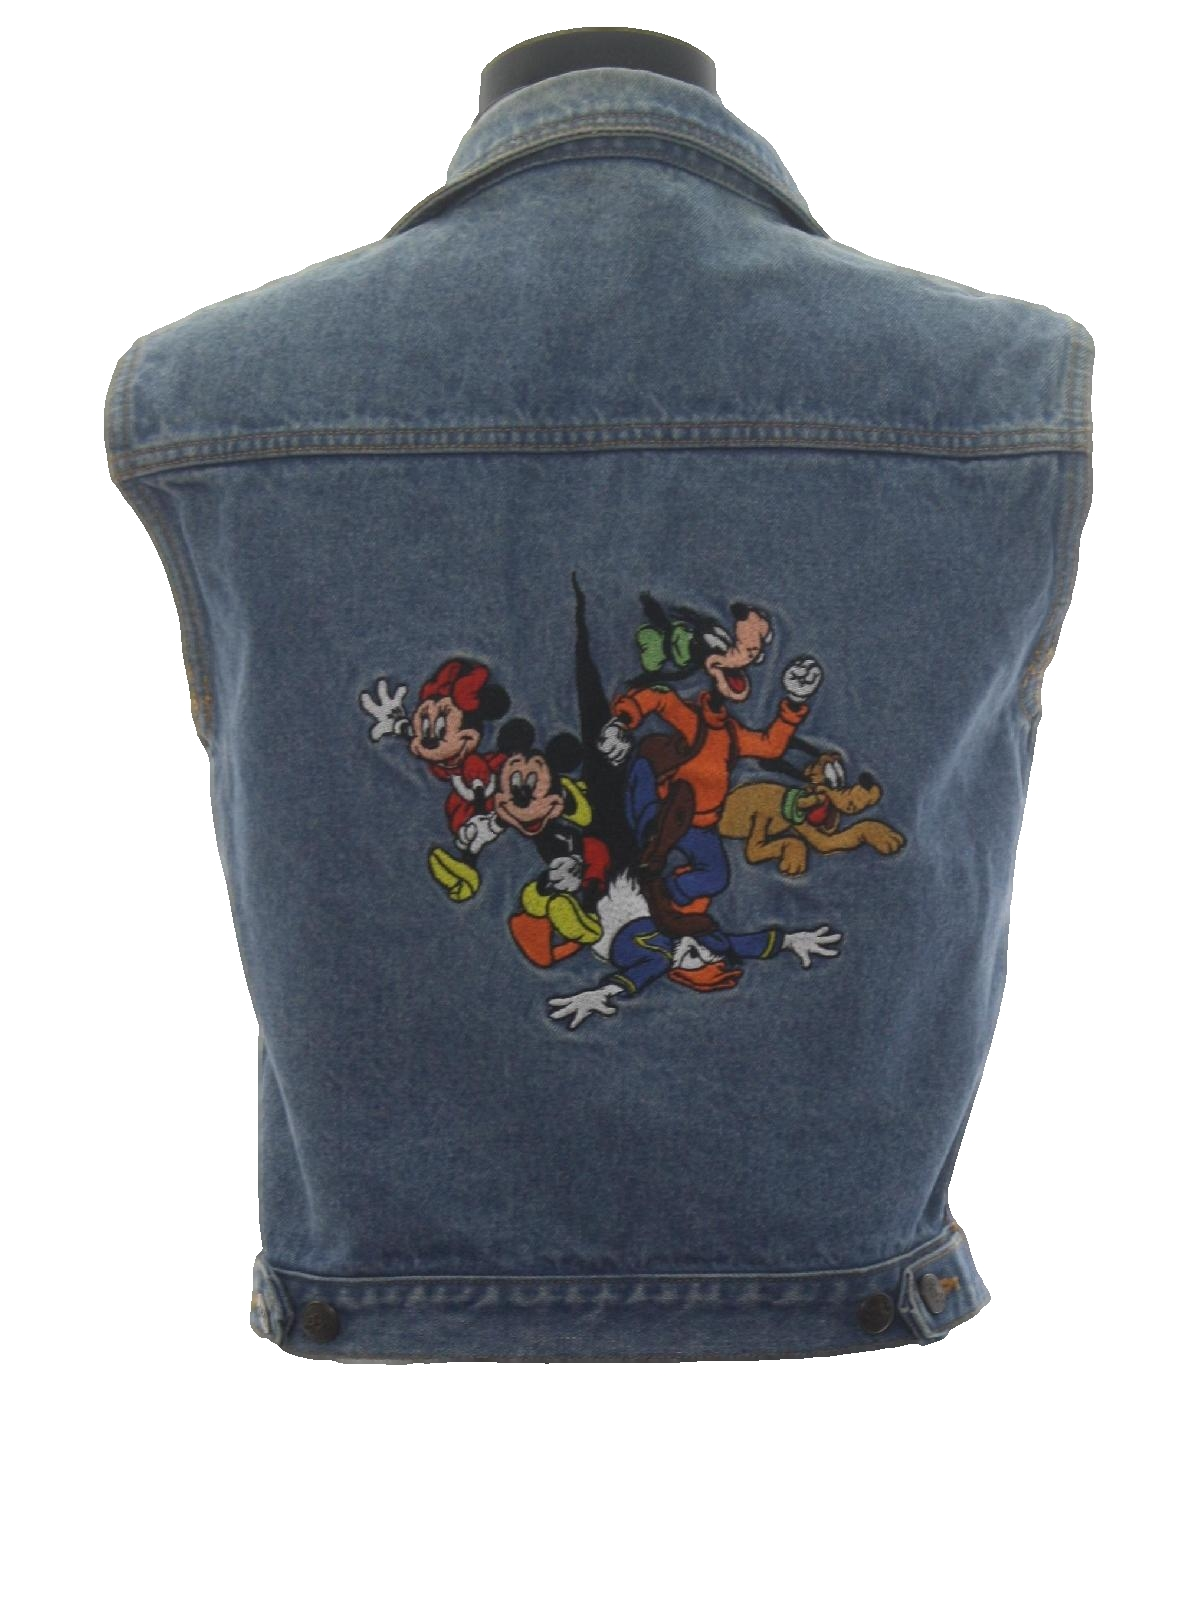 Retro 80s Vest Mickey Inc Womens Blue Background Cotton Long Hem Denim Sleeveless Metal Button Front Totally Disney With Small Fold Over